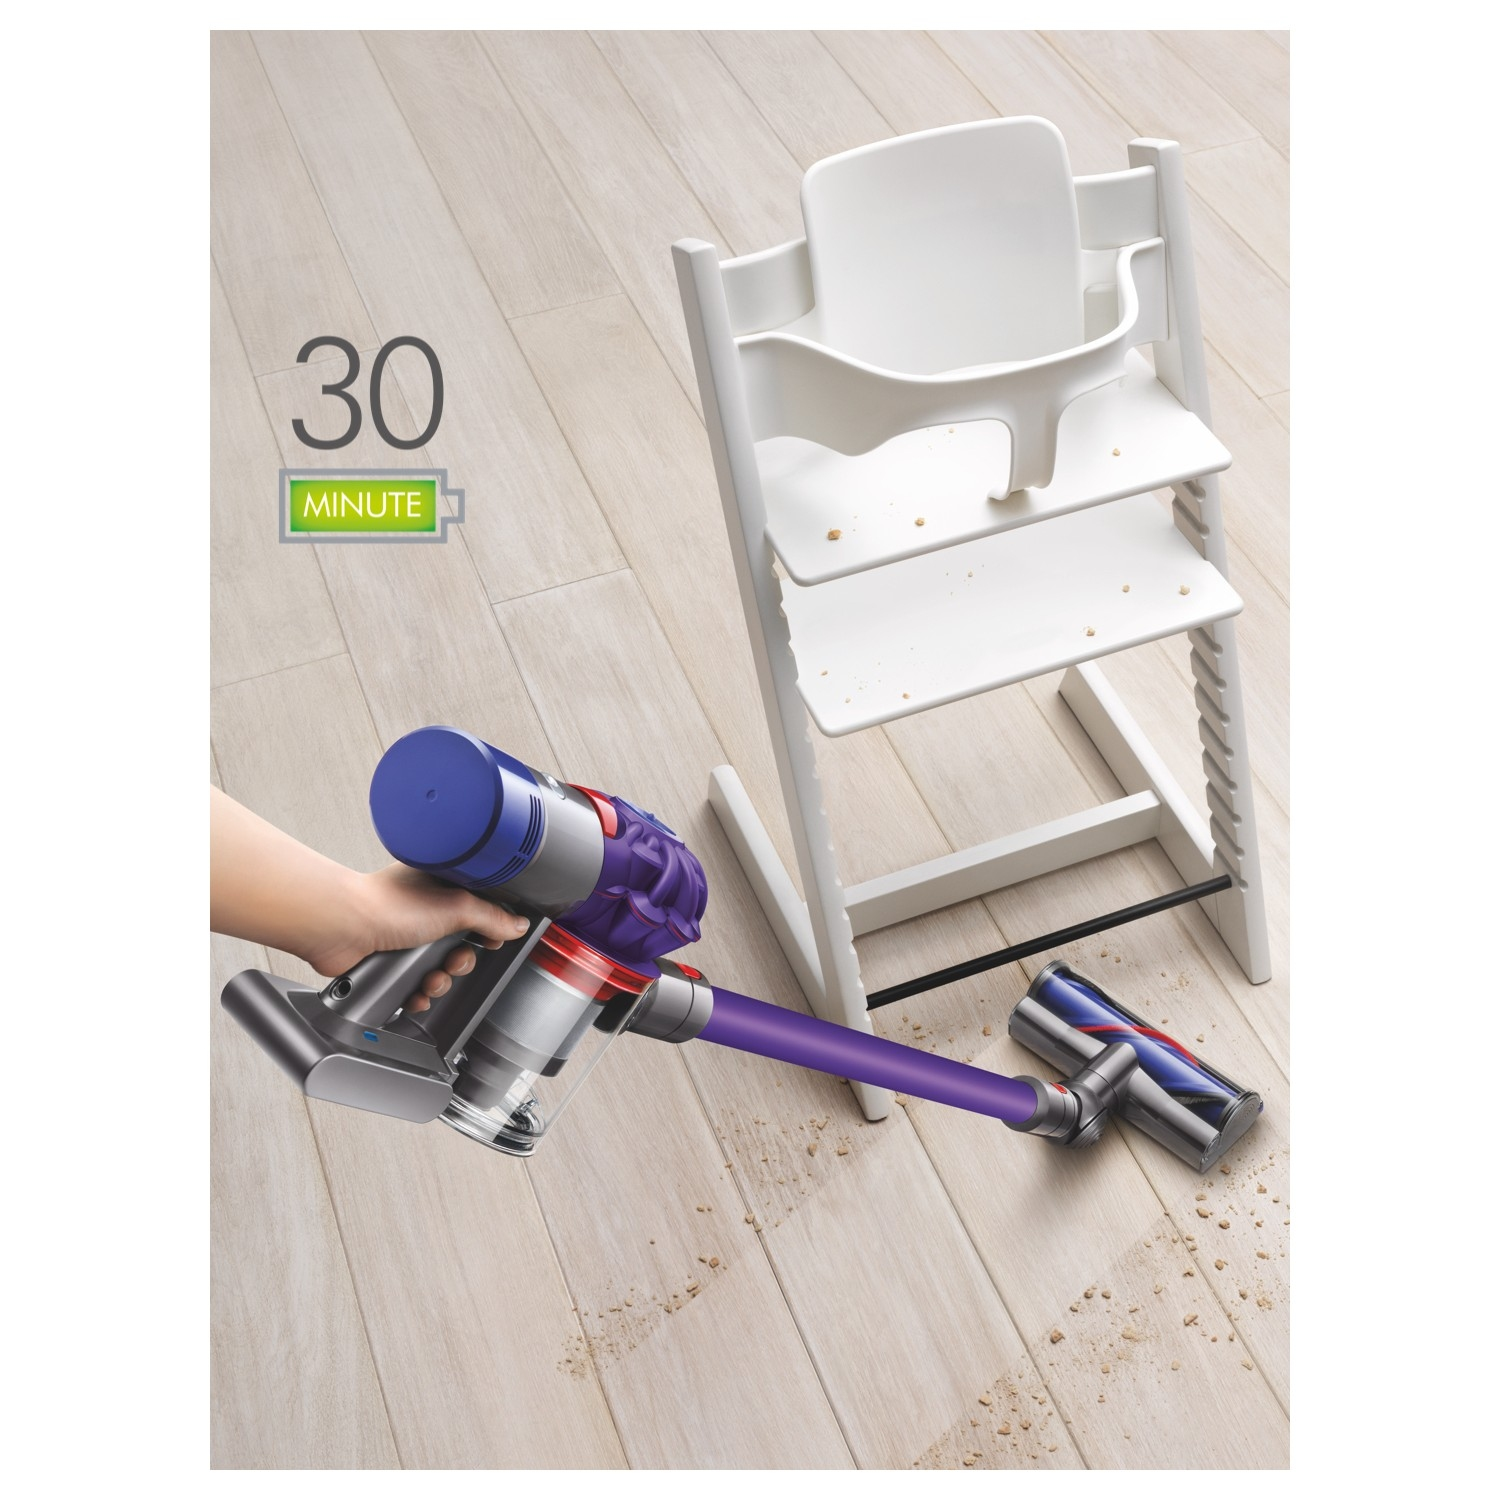 Dyson V7ANIMALPLUS Cordless Vacuum Cleaner - 30 Minute Run Time - 1